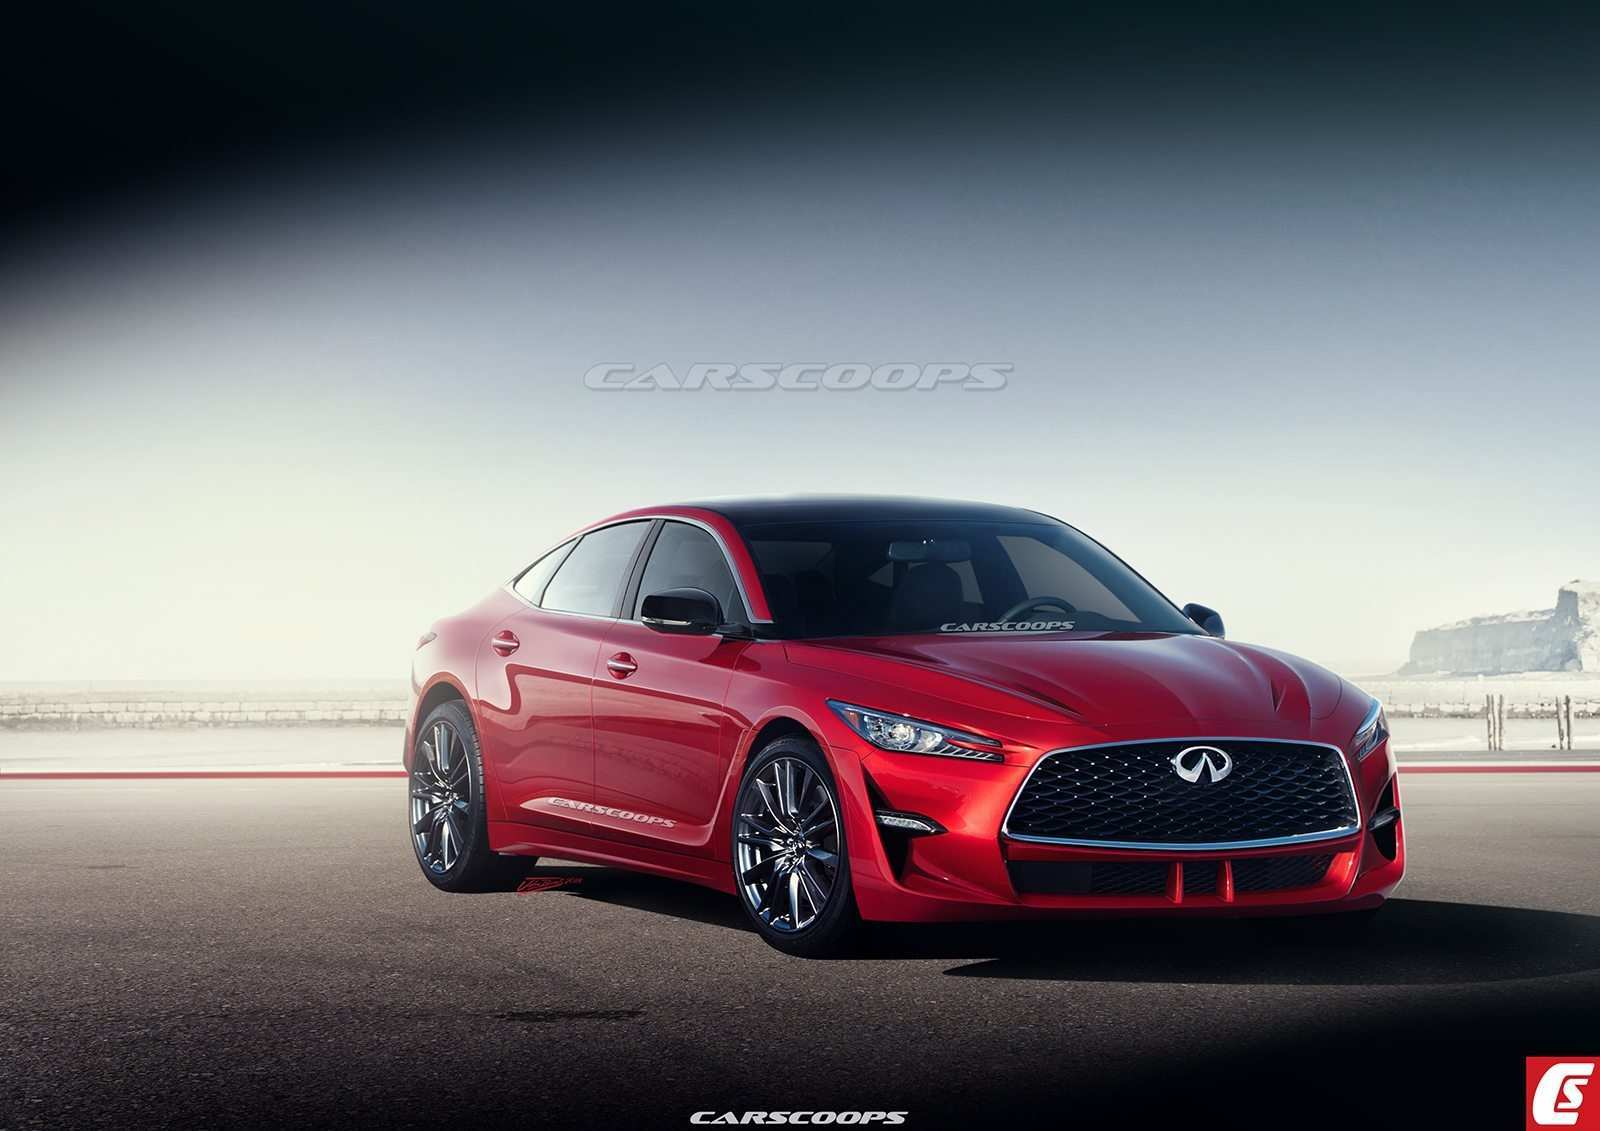 96 All New 2020 Infiniti Q50 Coupe Eau Rouge Concept And Review